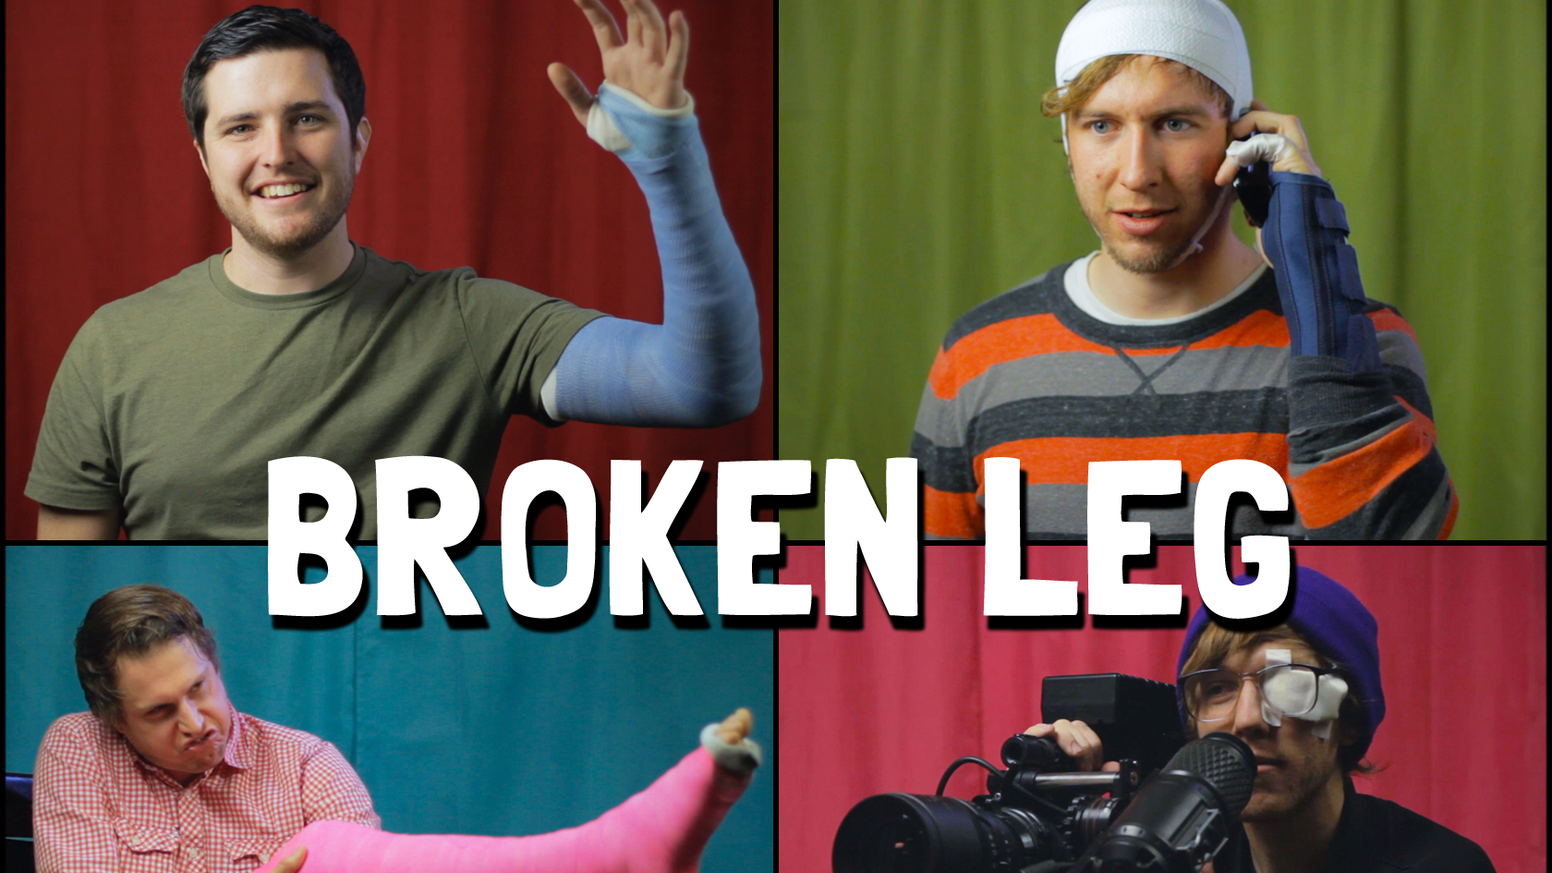 Karla has to babysit the most obnoxious person she knows for the weekend... Theo, her brother-in-law who's broken his leg.A Kickstarted feature film, available now!